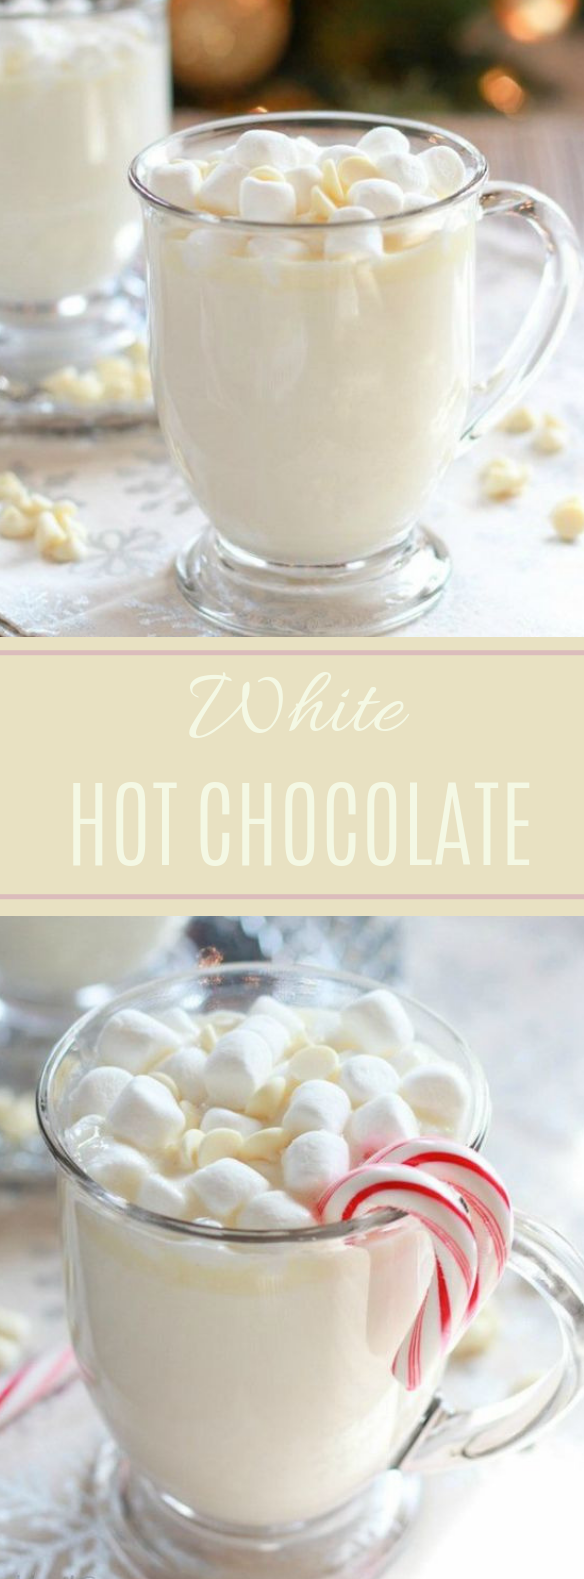 Homemade White Hot Chocolate #warmdrink #easy